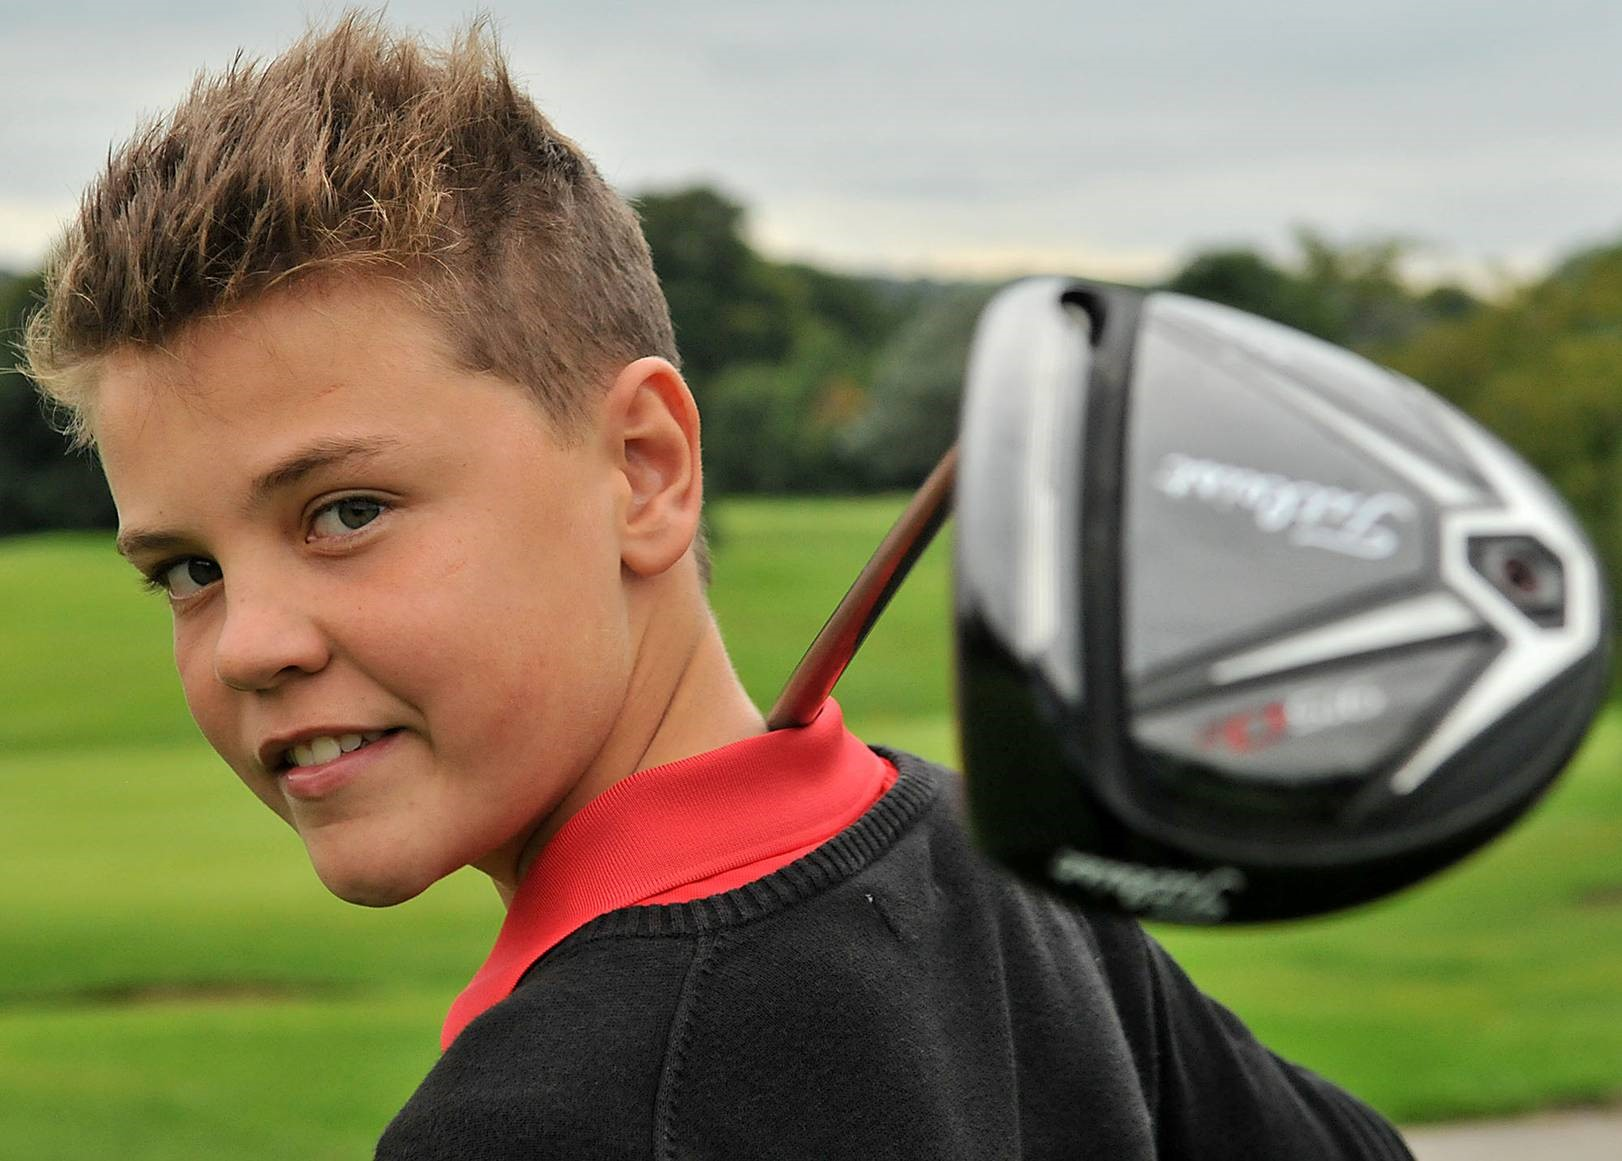 TYTHERINGTON GOLFER REMY COMES SIXTH IN EUROPEAN OPEN